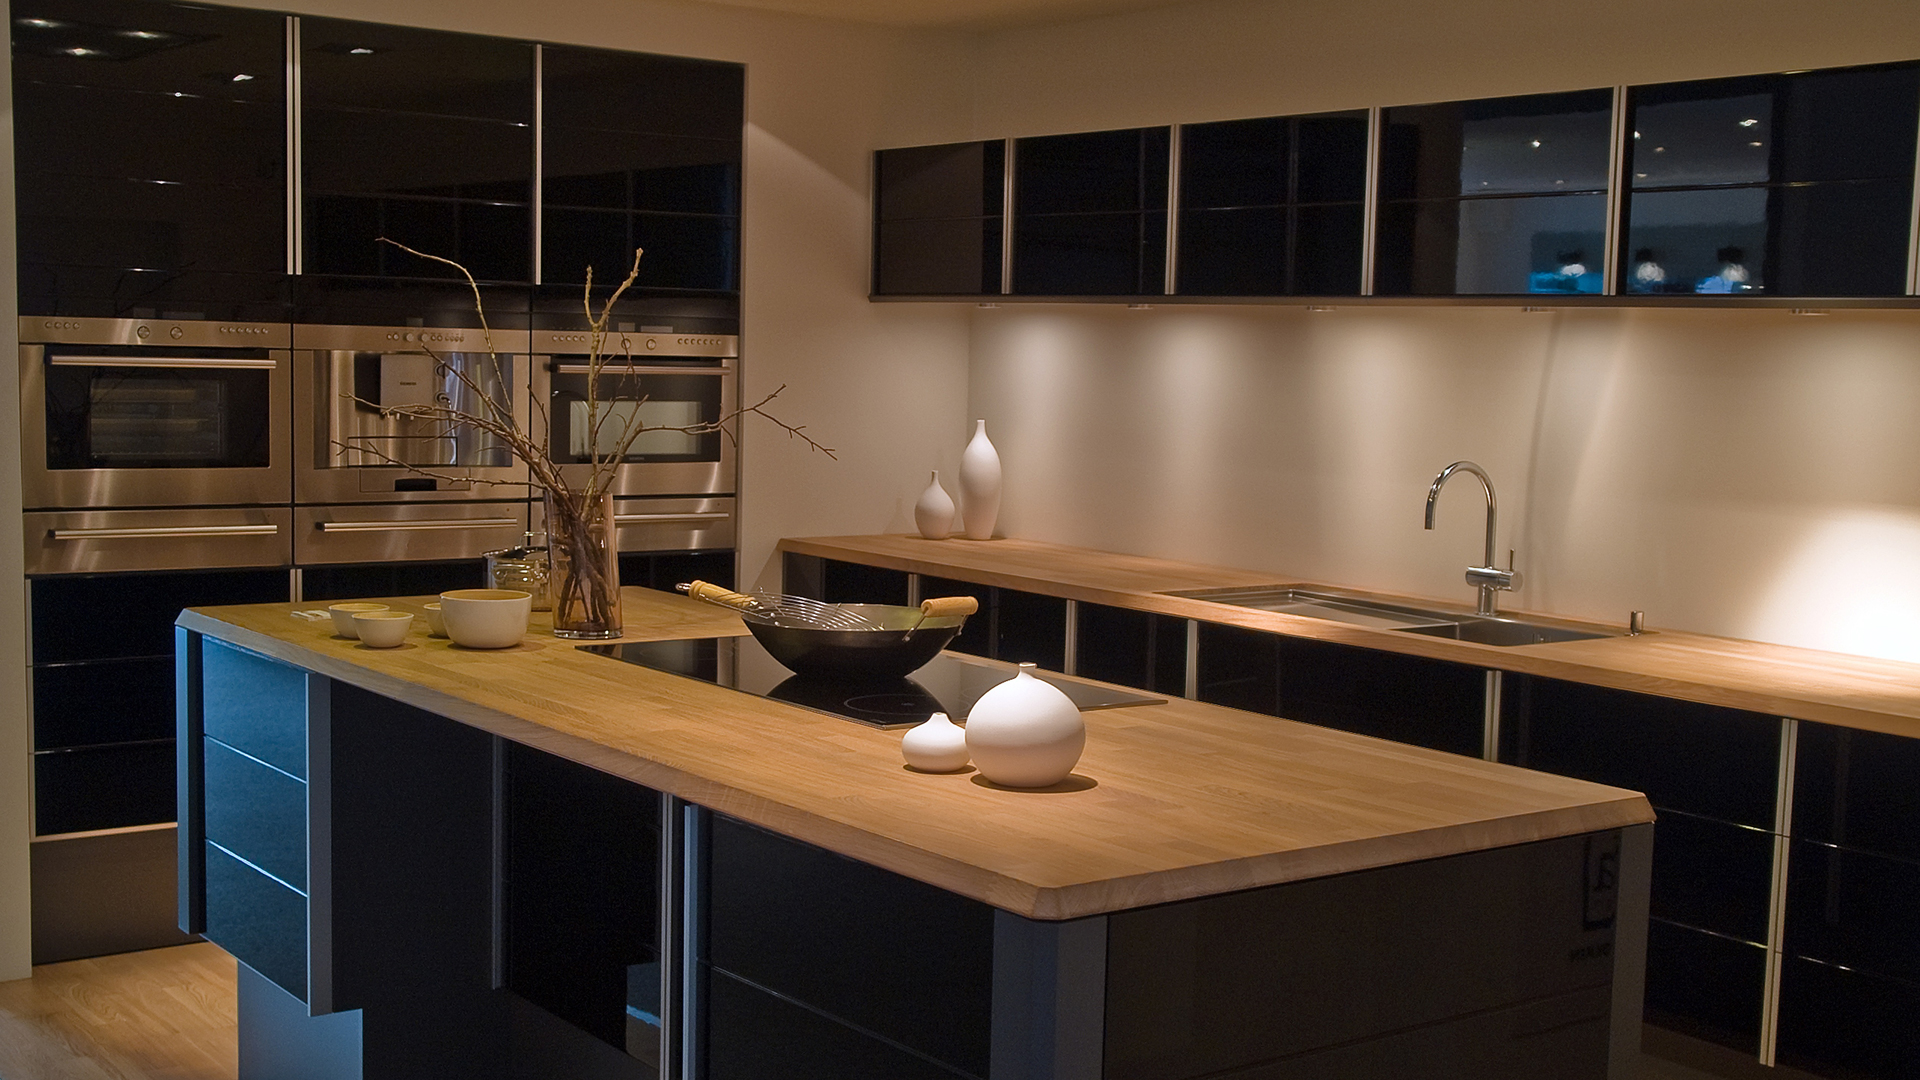 About Kitchen Pro - Kitchen Cabinets Online